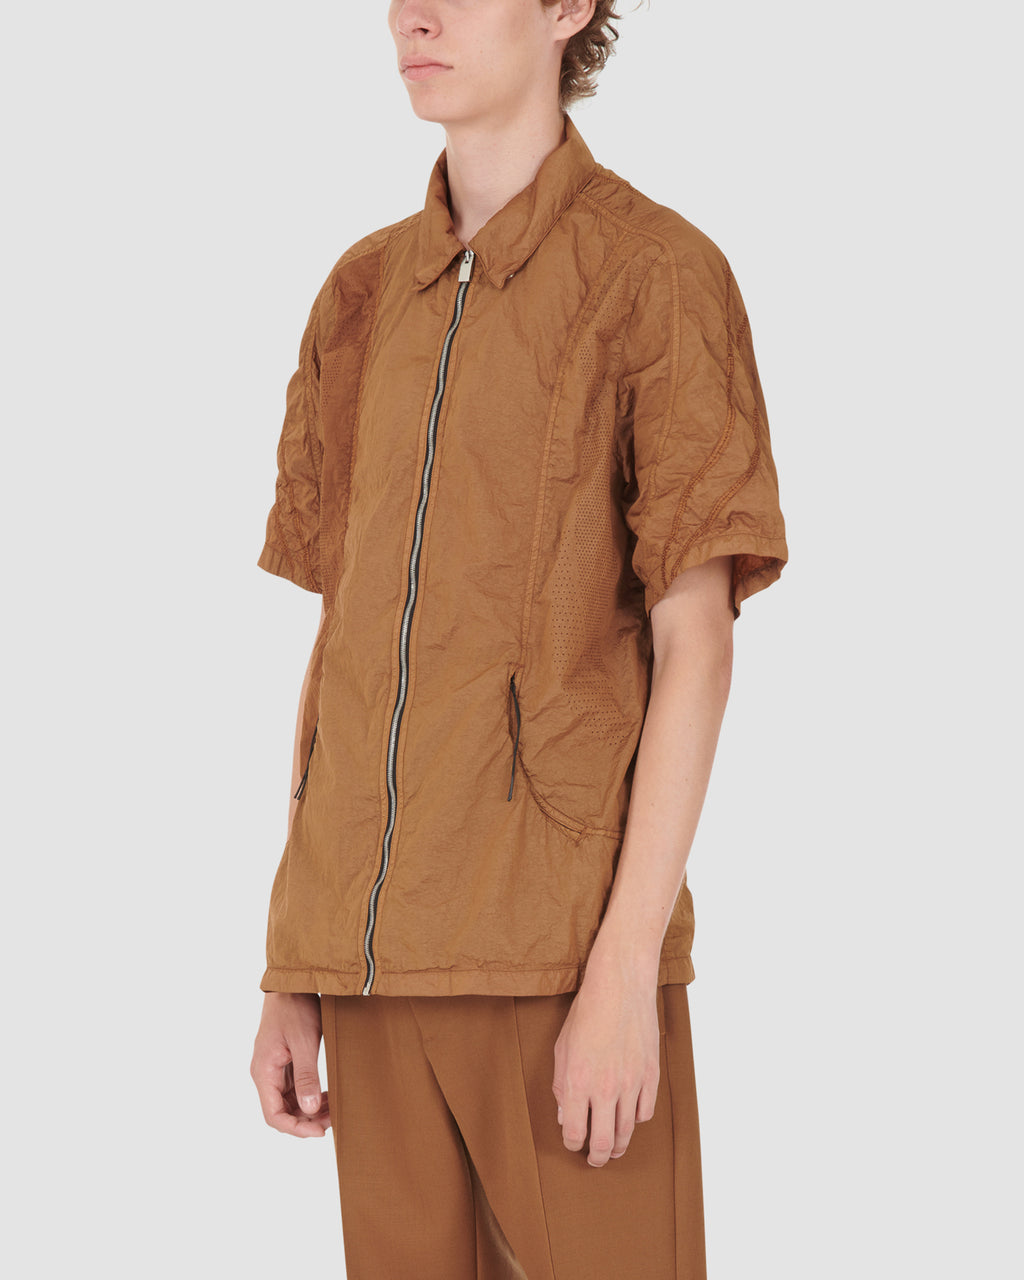 1017 ALYX 9SM | SS GD SHIRT | Shirt | CAMEL, Google Shopping, Man, MEN, S20, S20 Drop II, Shirts, TOPS & SHIRTS